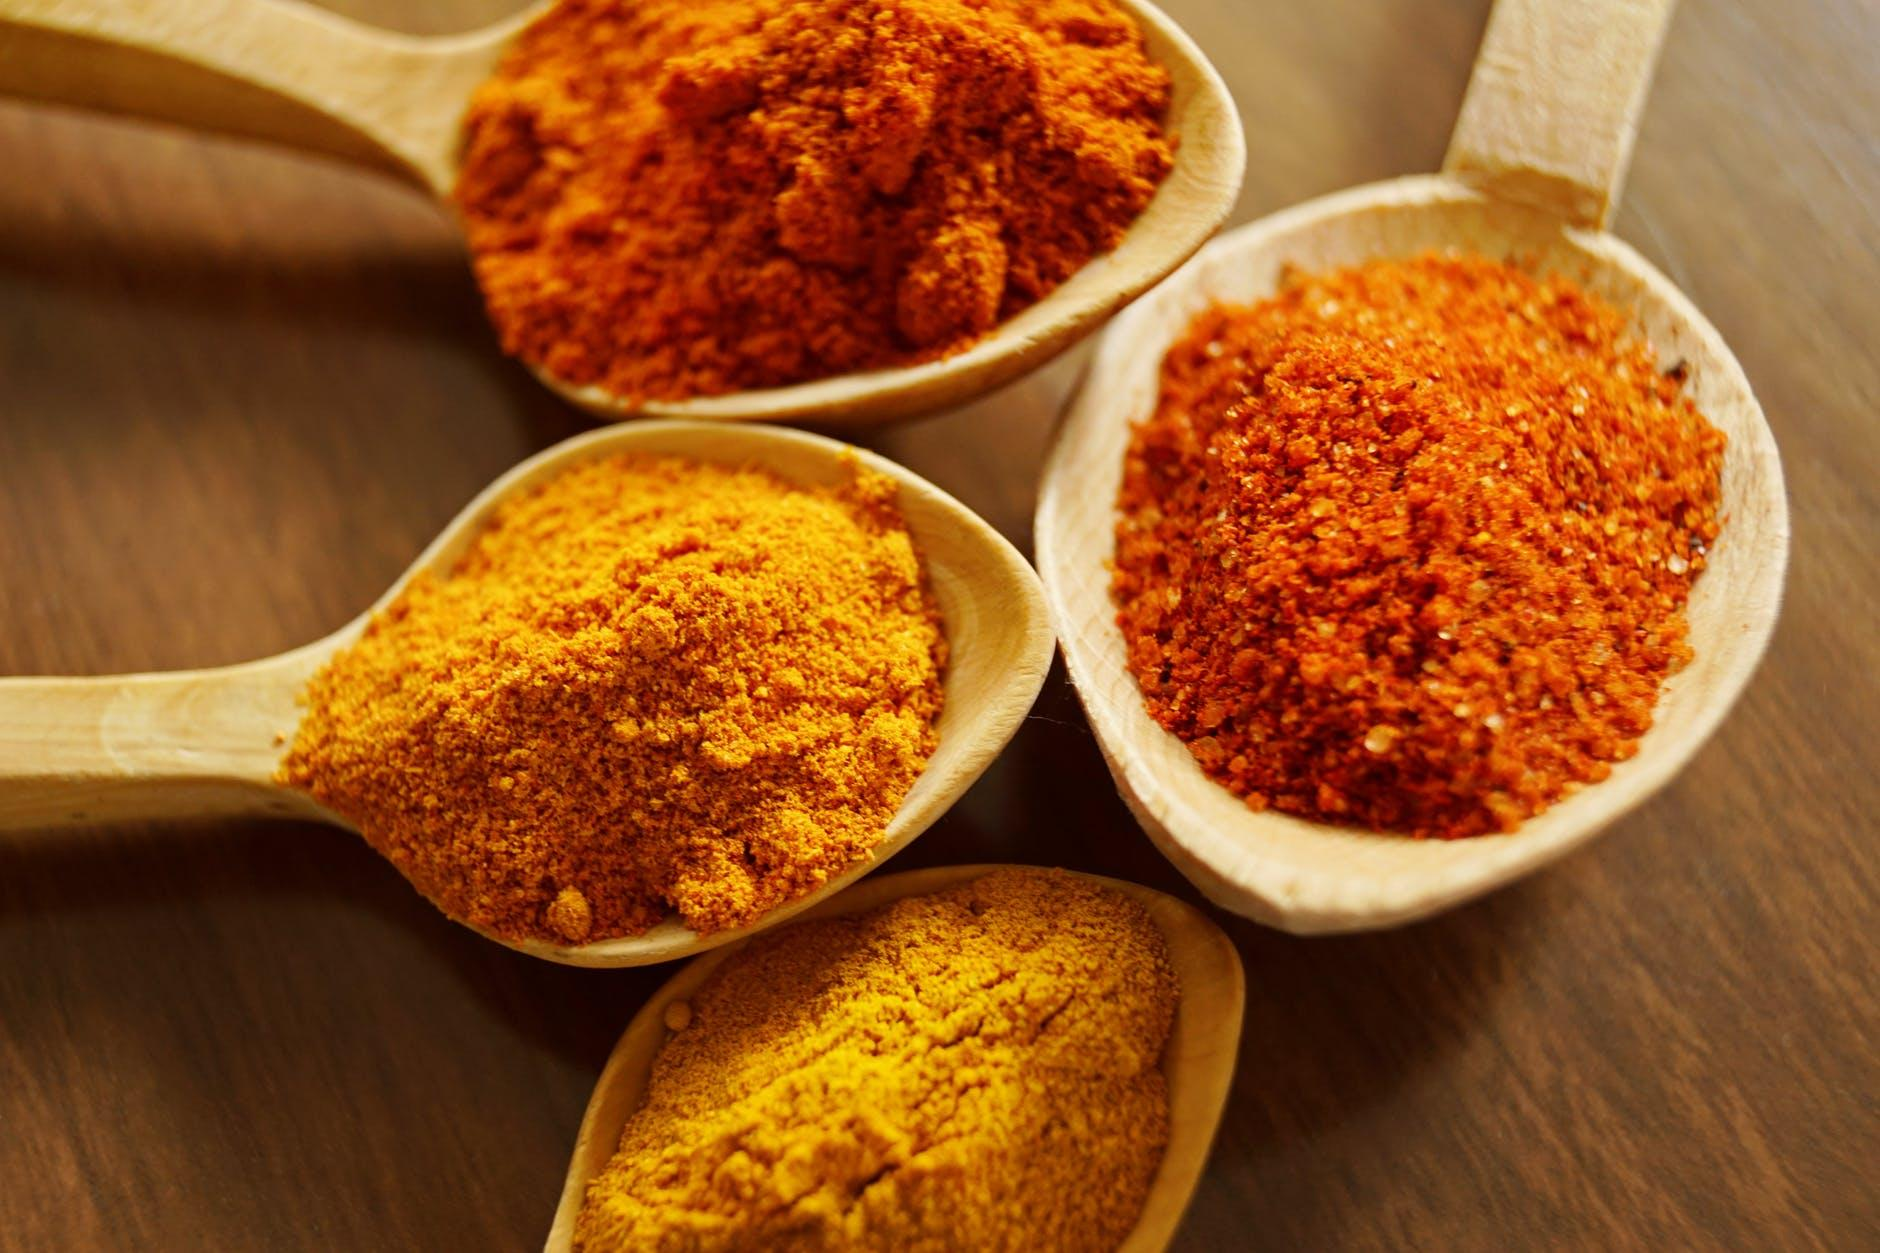 Turmeric can help in your quest on how to live longer